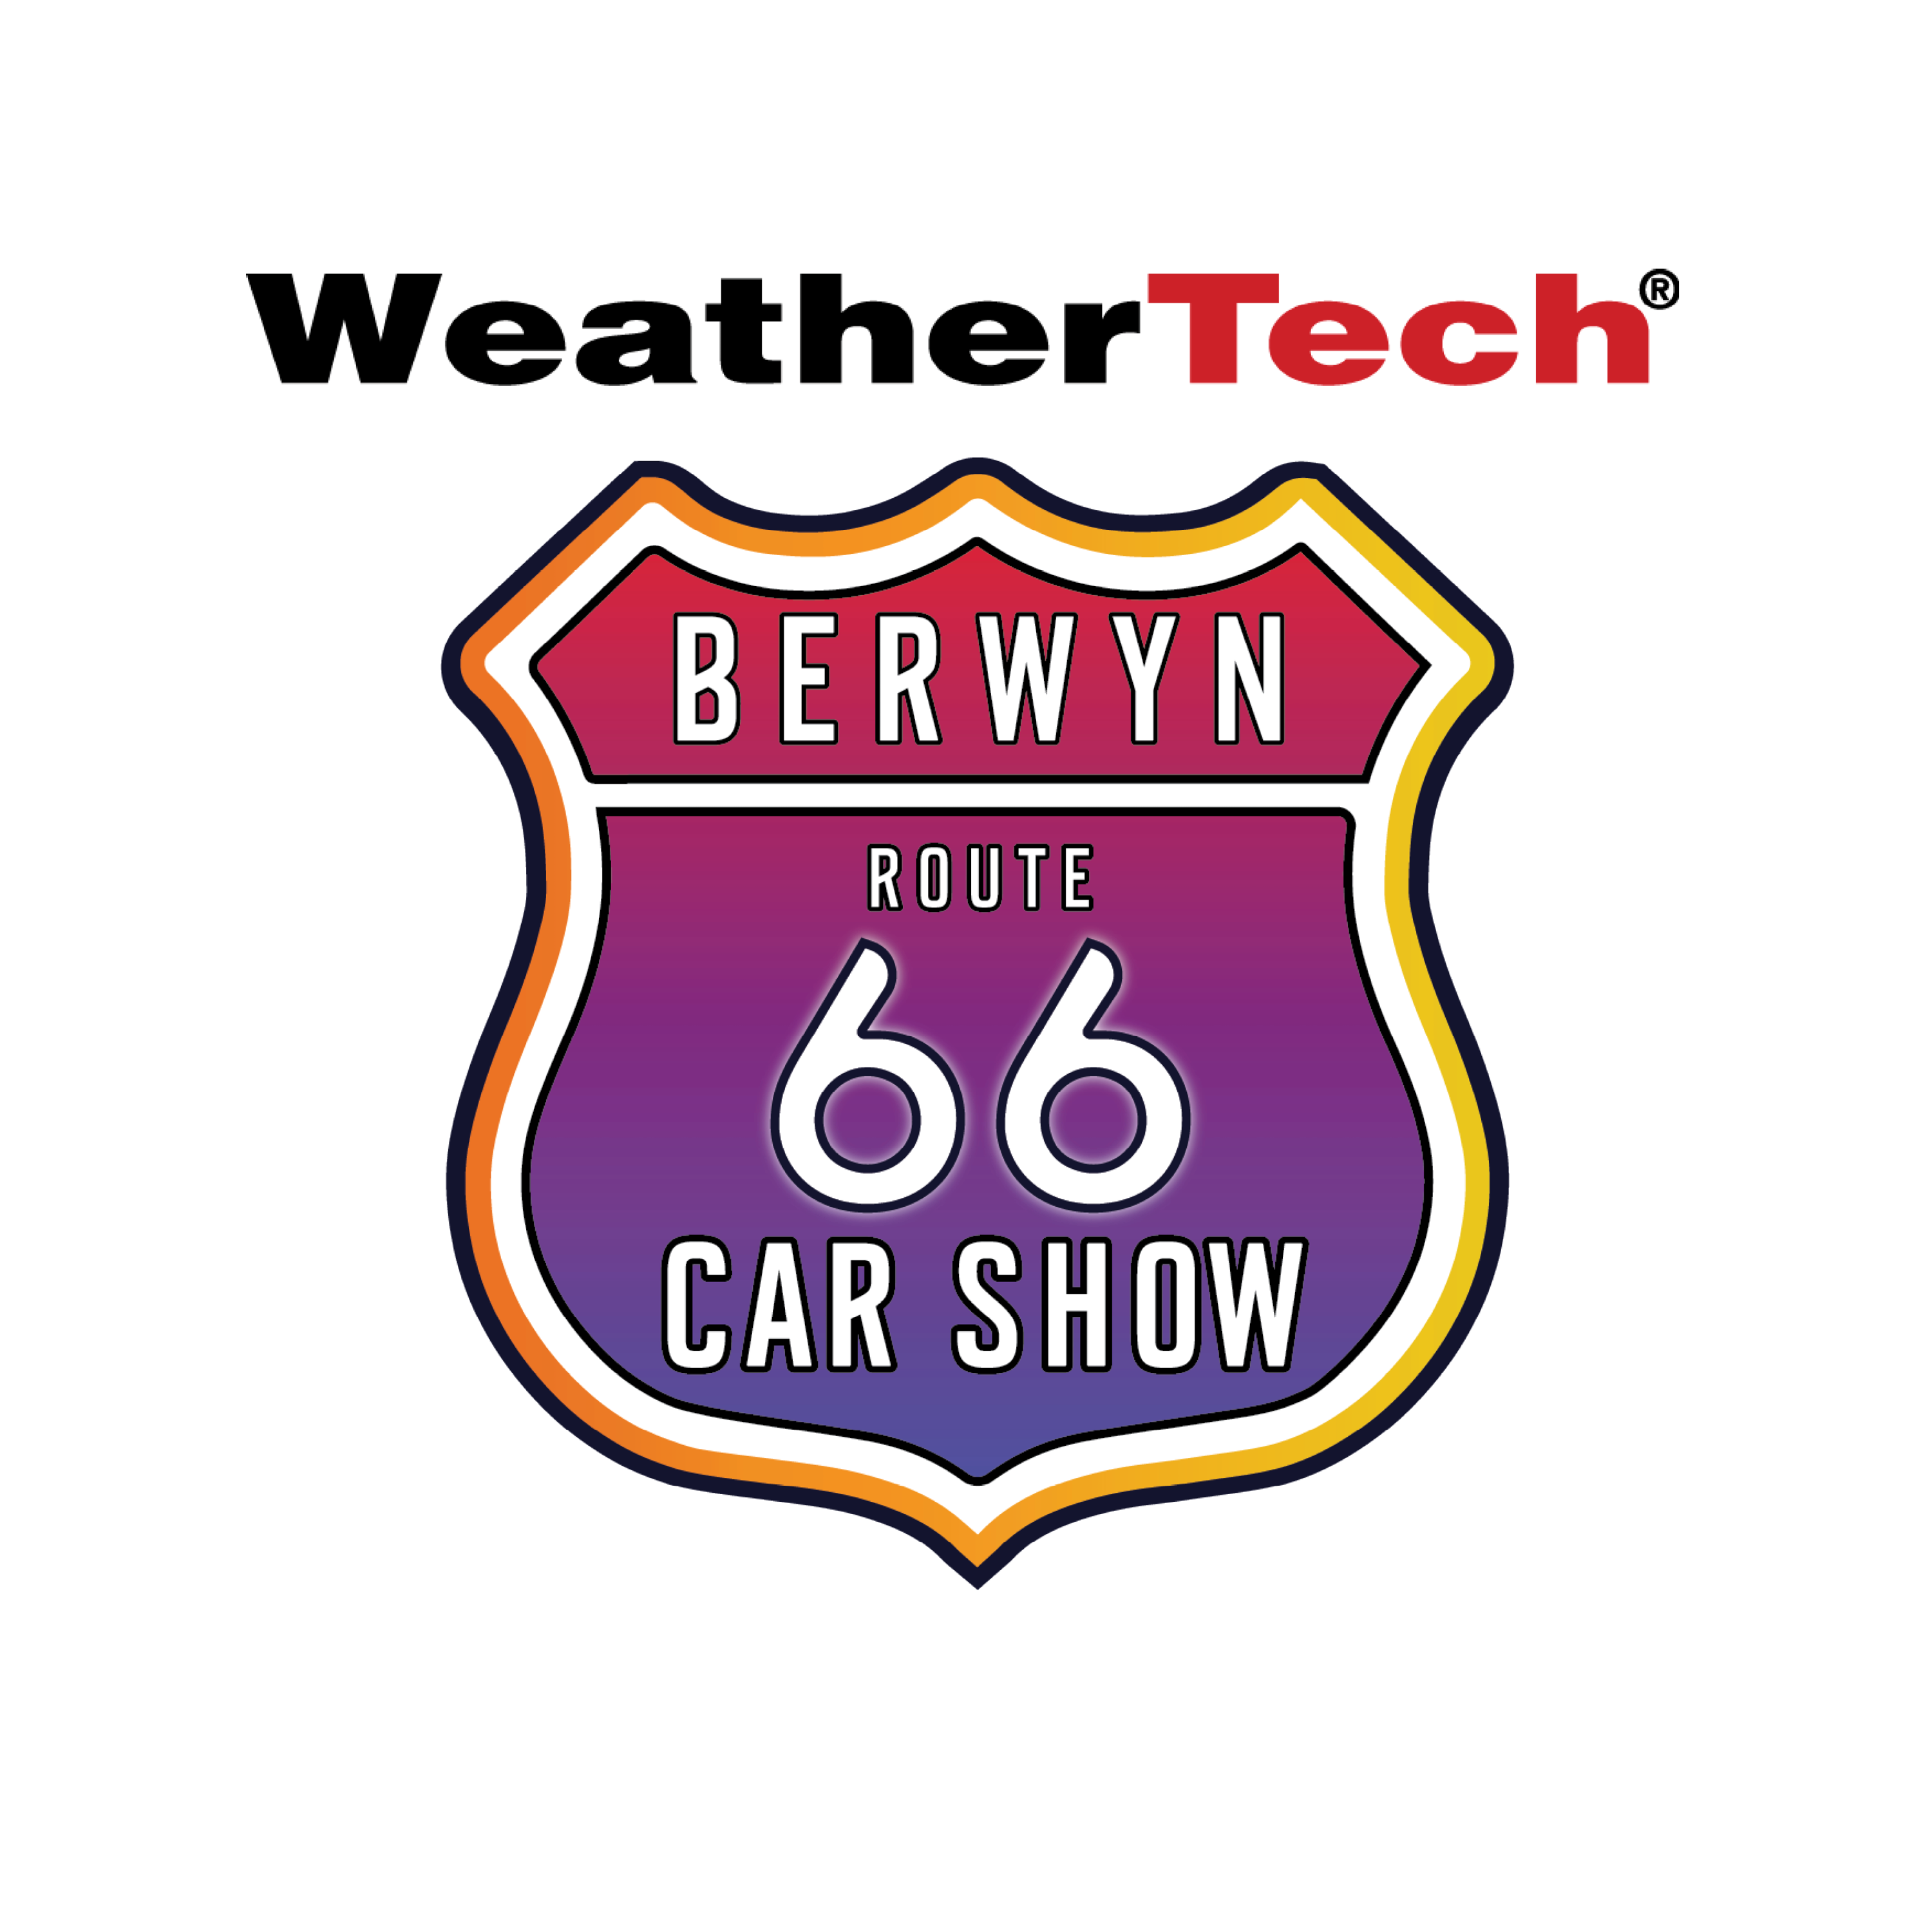 WeatherTech Berwyn Rt66 Car Show